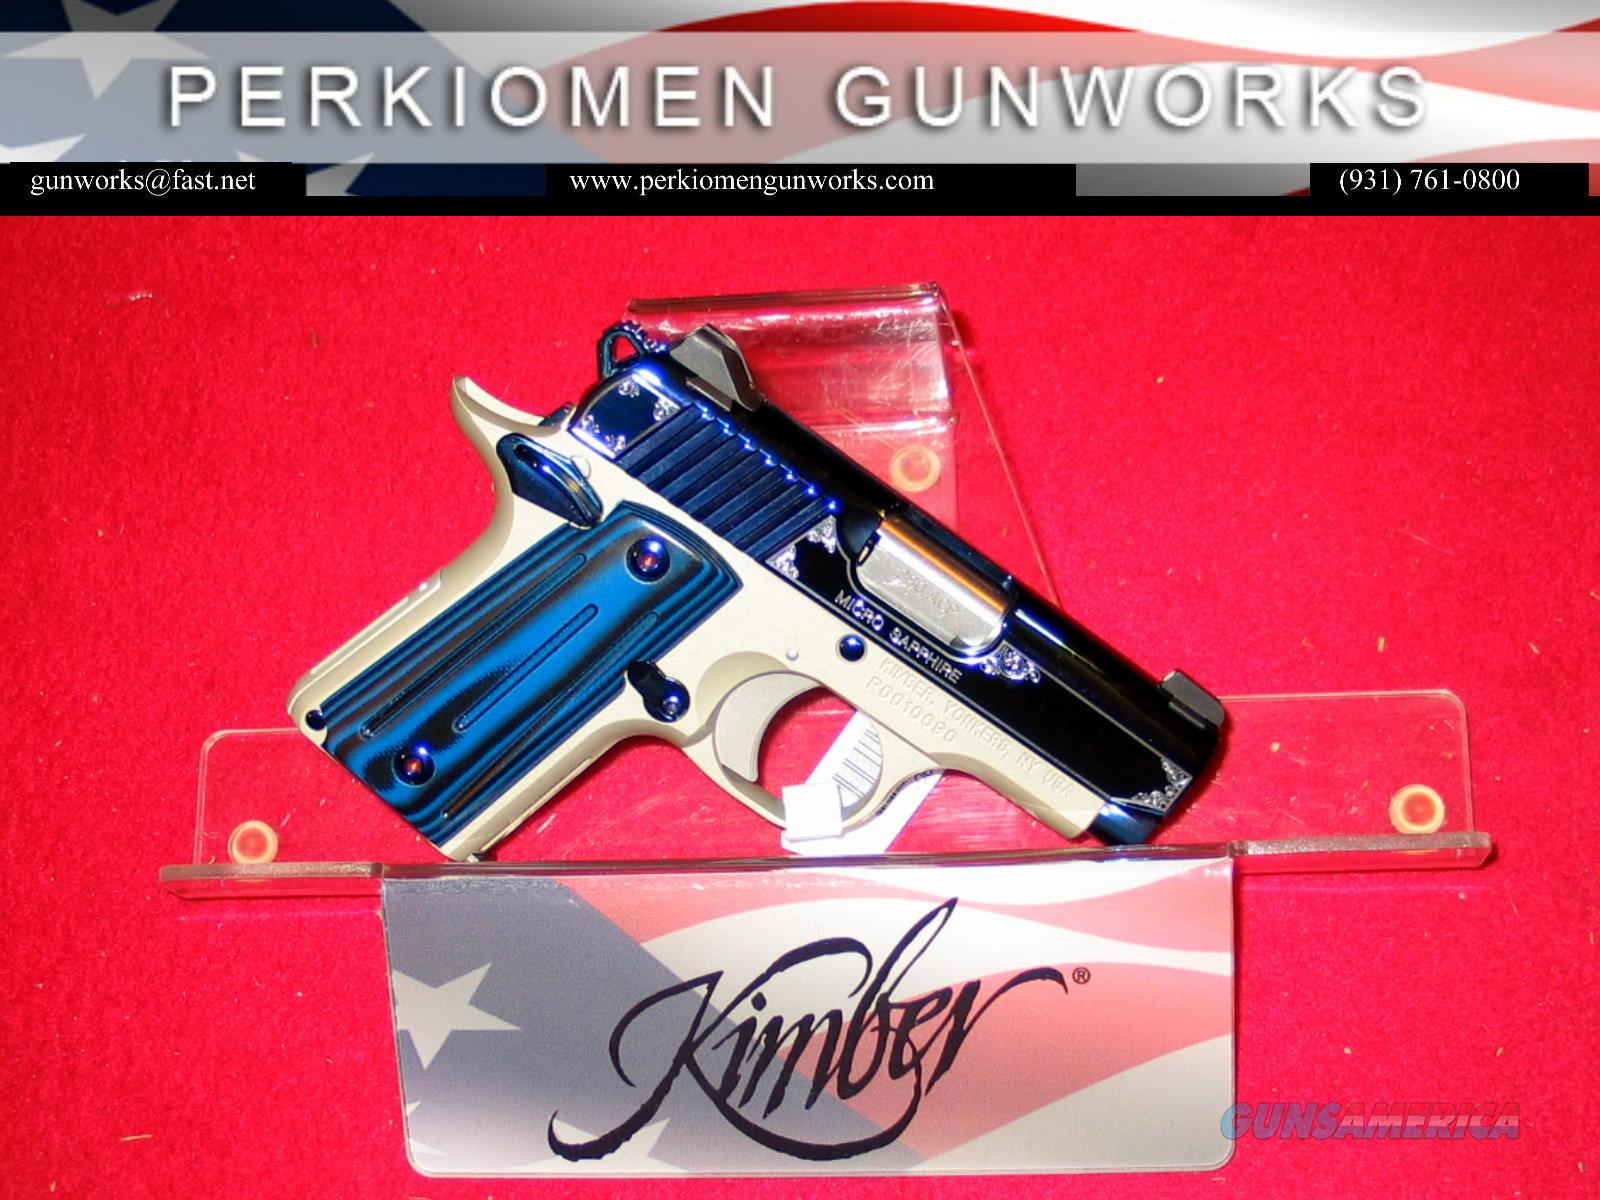 Micro SAPPHIRE, .380acp, New in Box w/Holster and Kimber pistol Rug  Guns > Pistols > Kimber of America Pistols